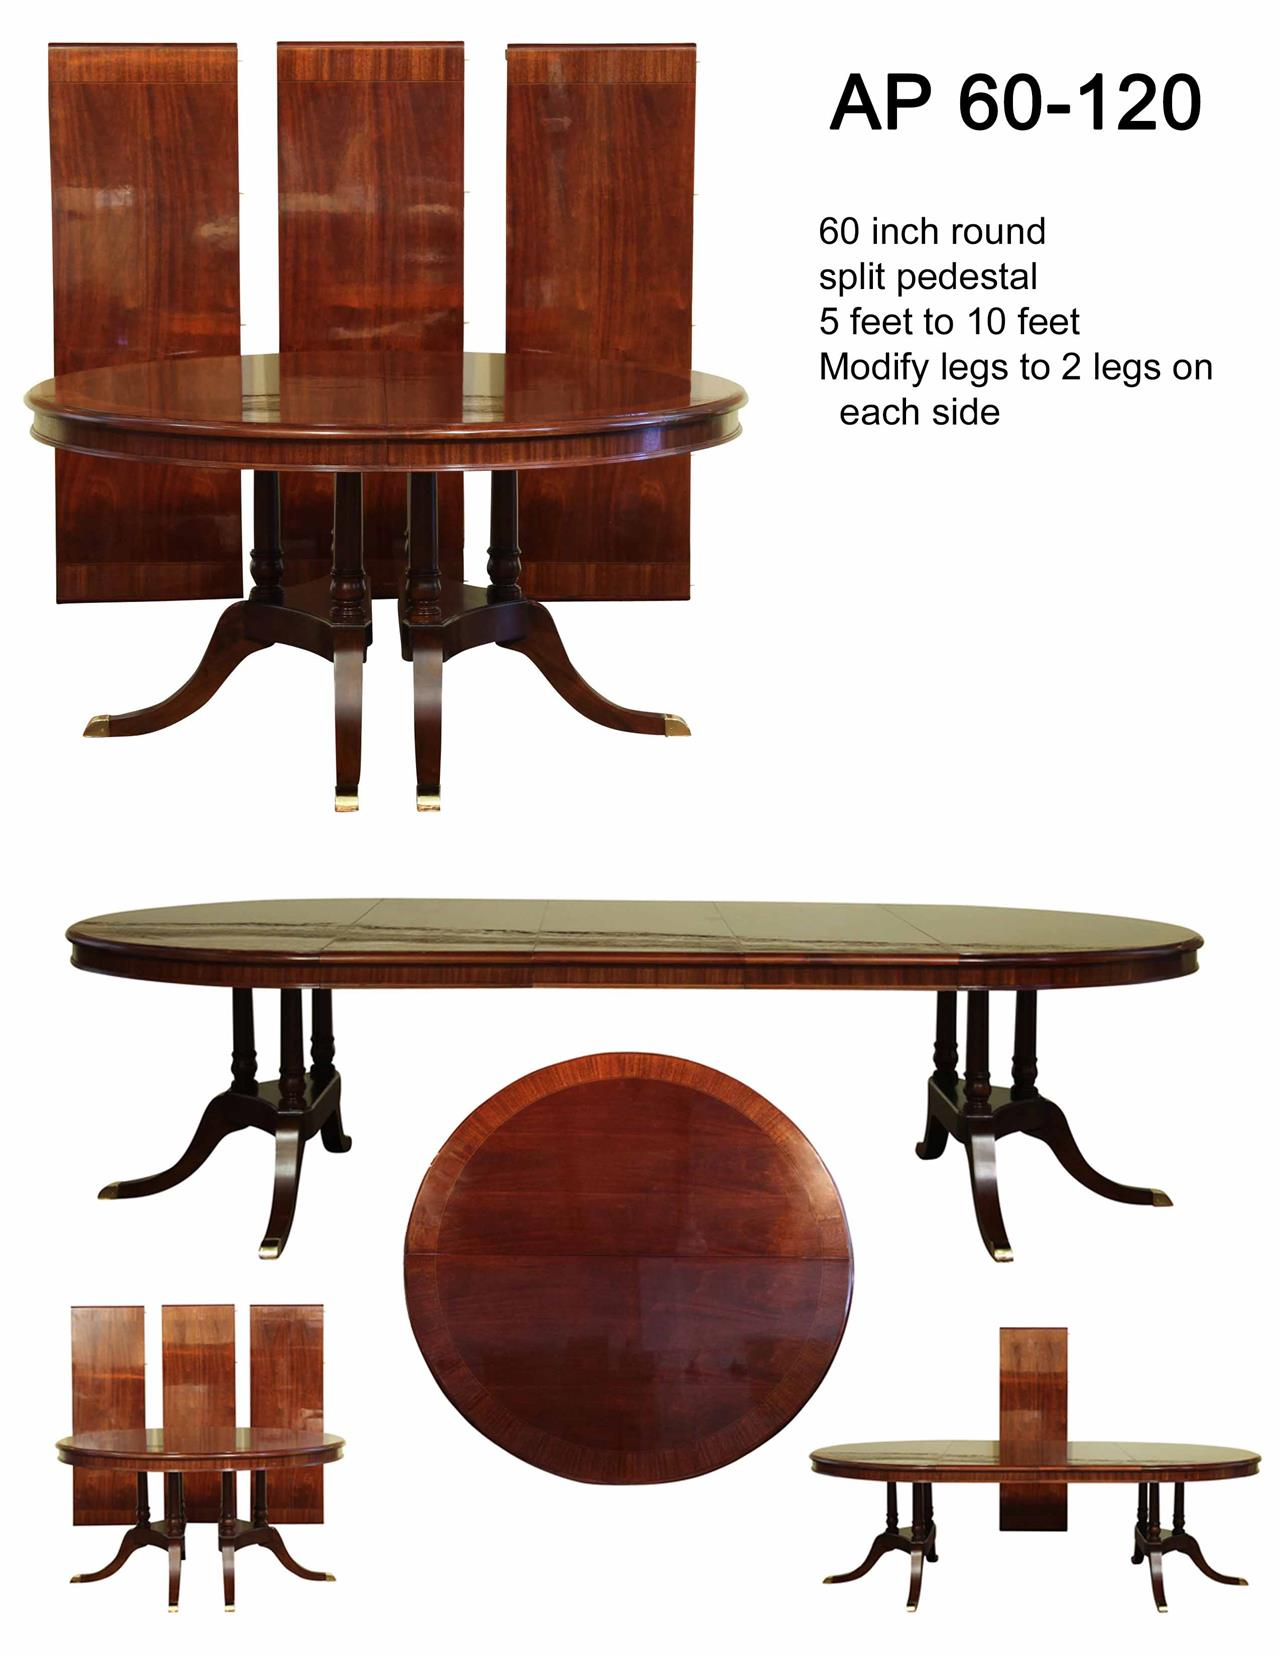 Large traditional round mahogany dining table for 6 to 12 for Dining room tables 120 inches